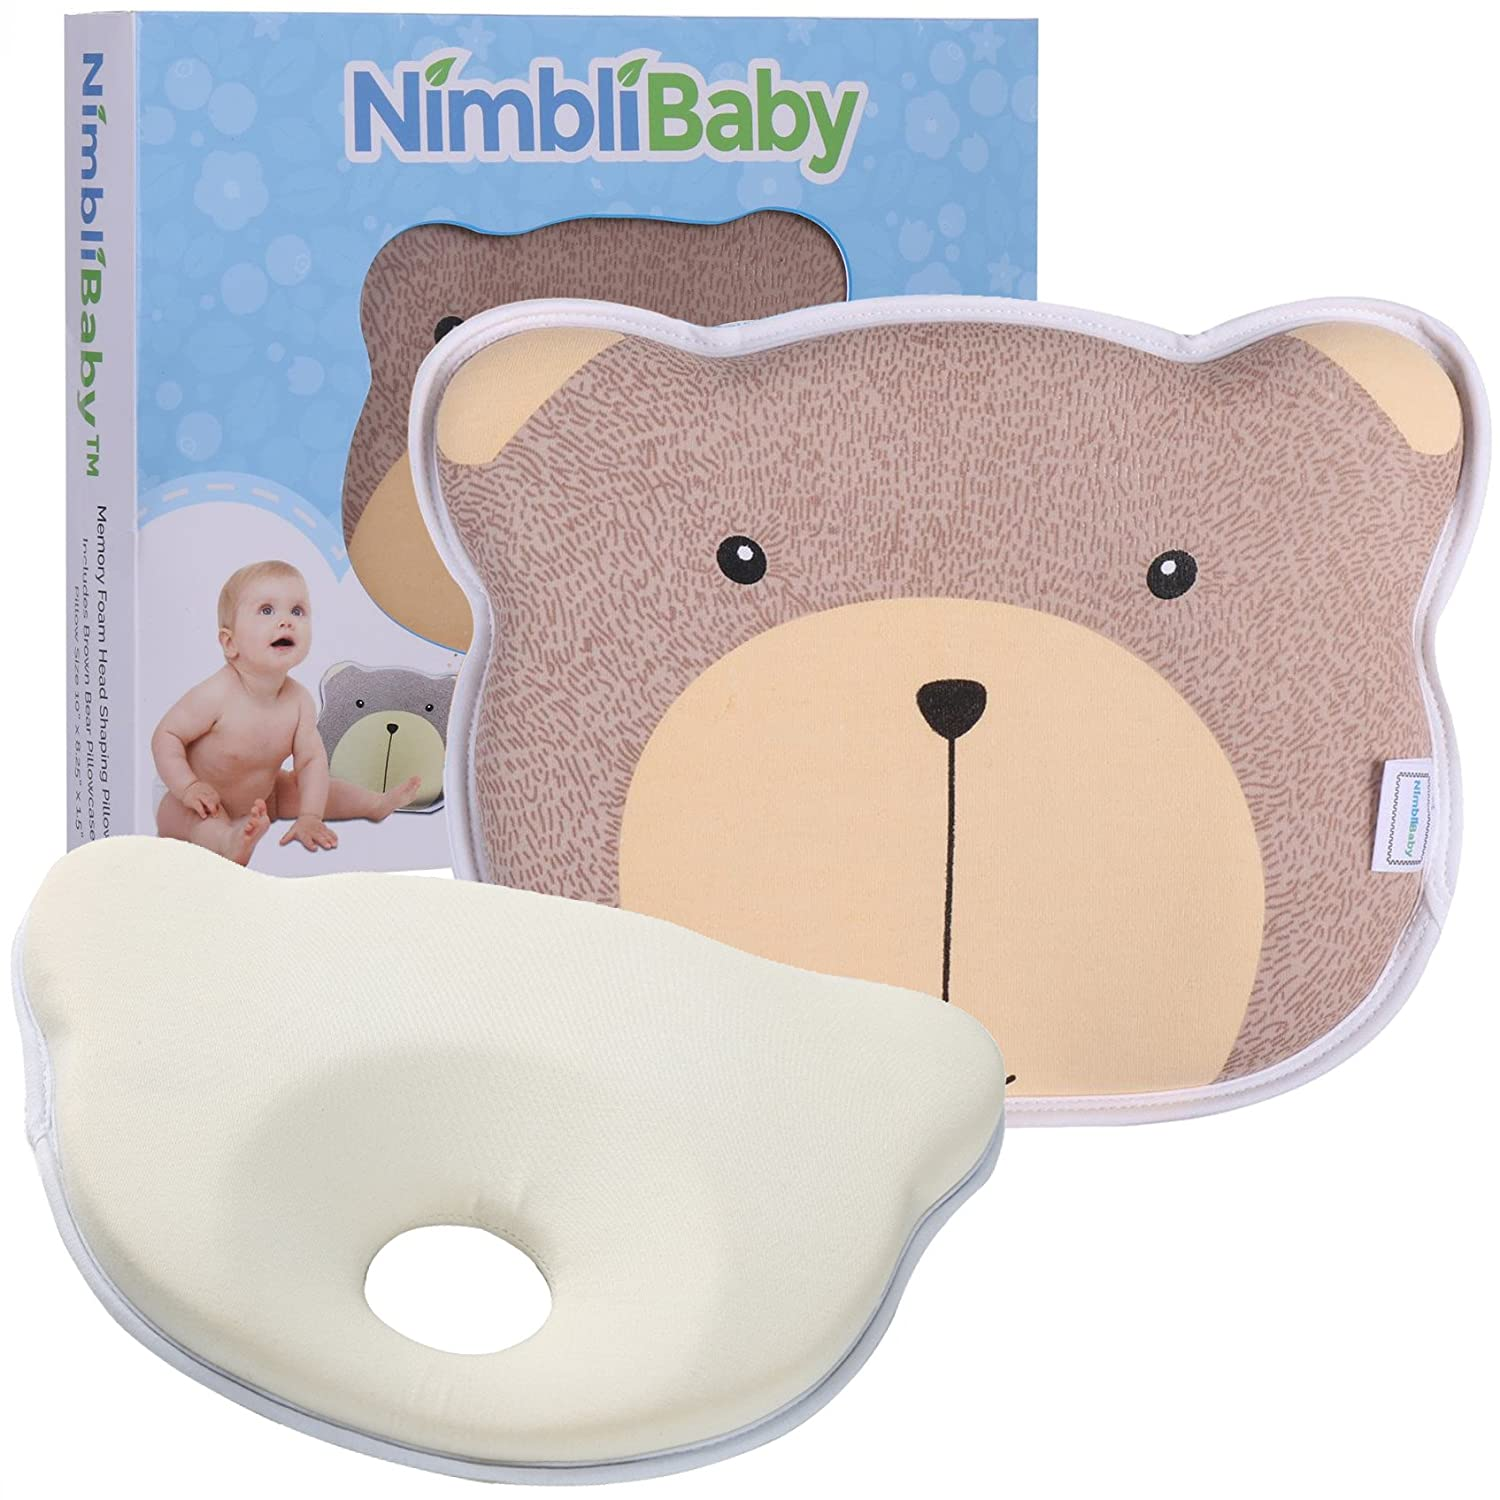 be756cc29d02 Amazon.com : Baby Head Shaping Pillow - Memory Foam flat head baby pillow -  baby registry must have gift : Baby